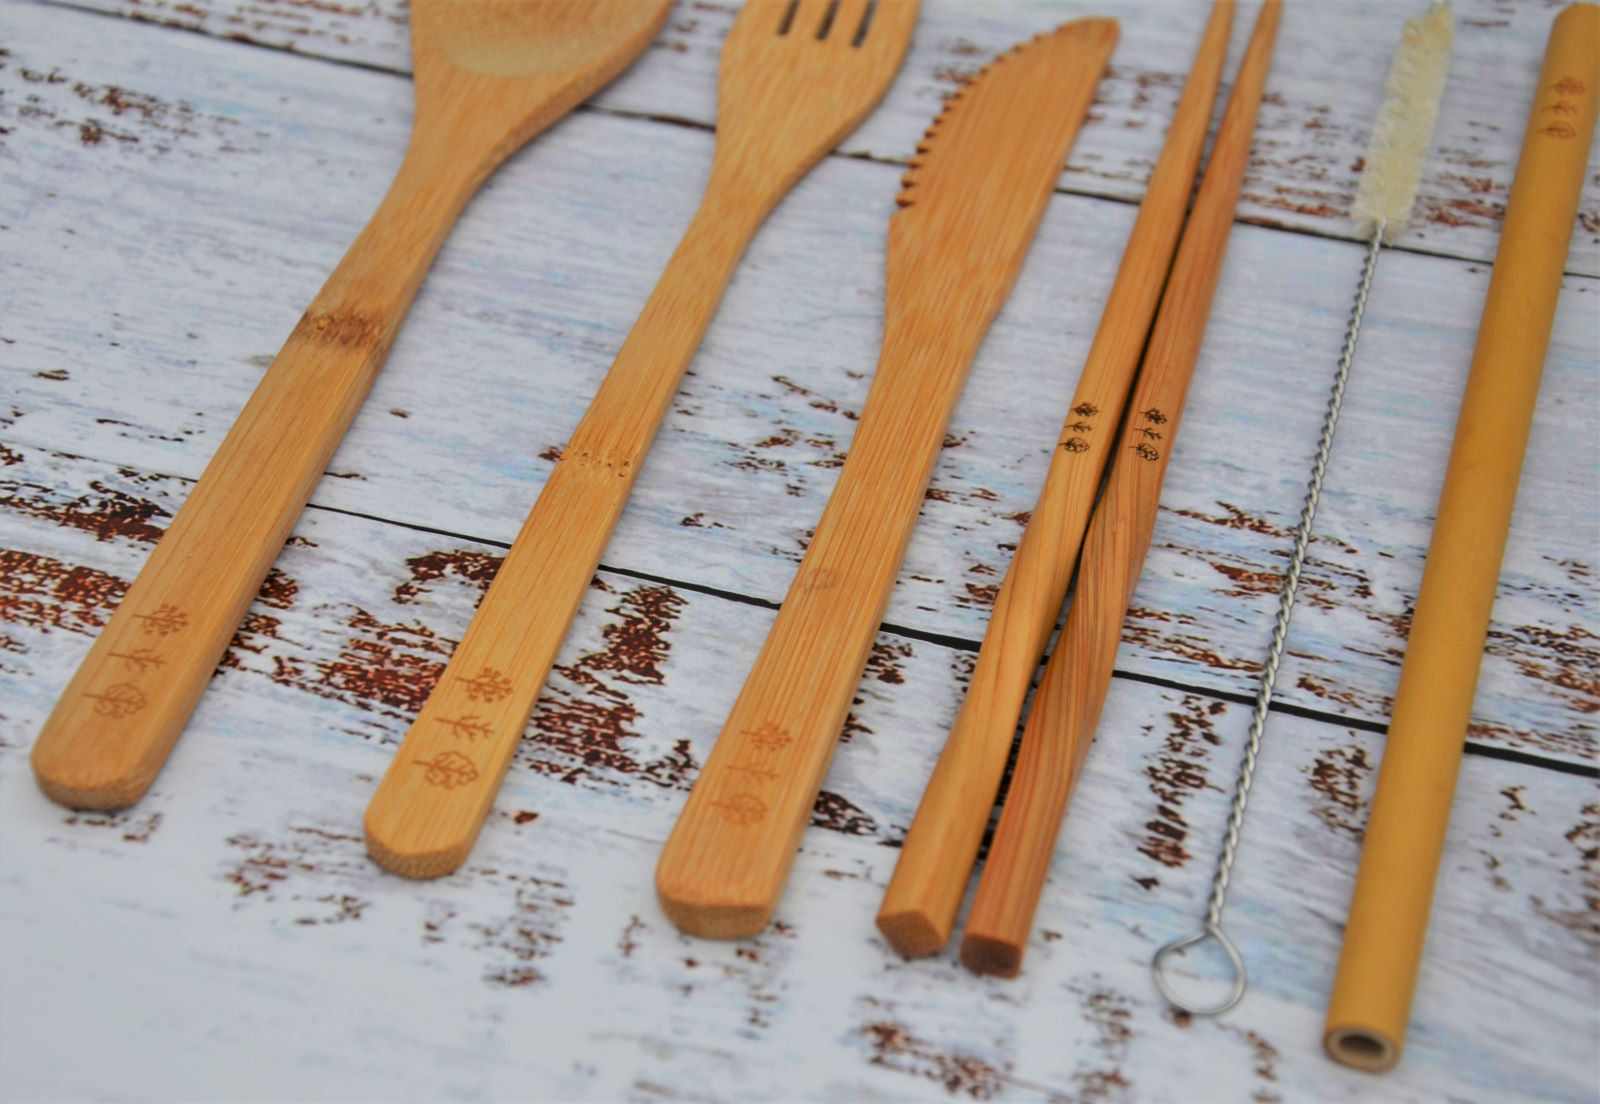 Bamboo cultery laid out, close up of logo engraved